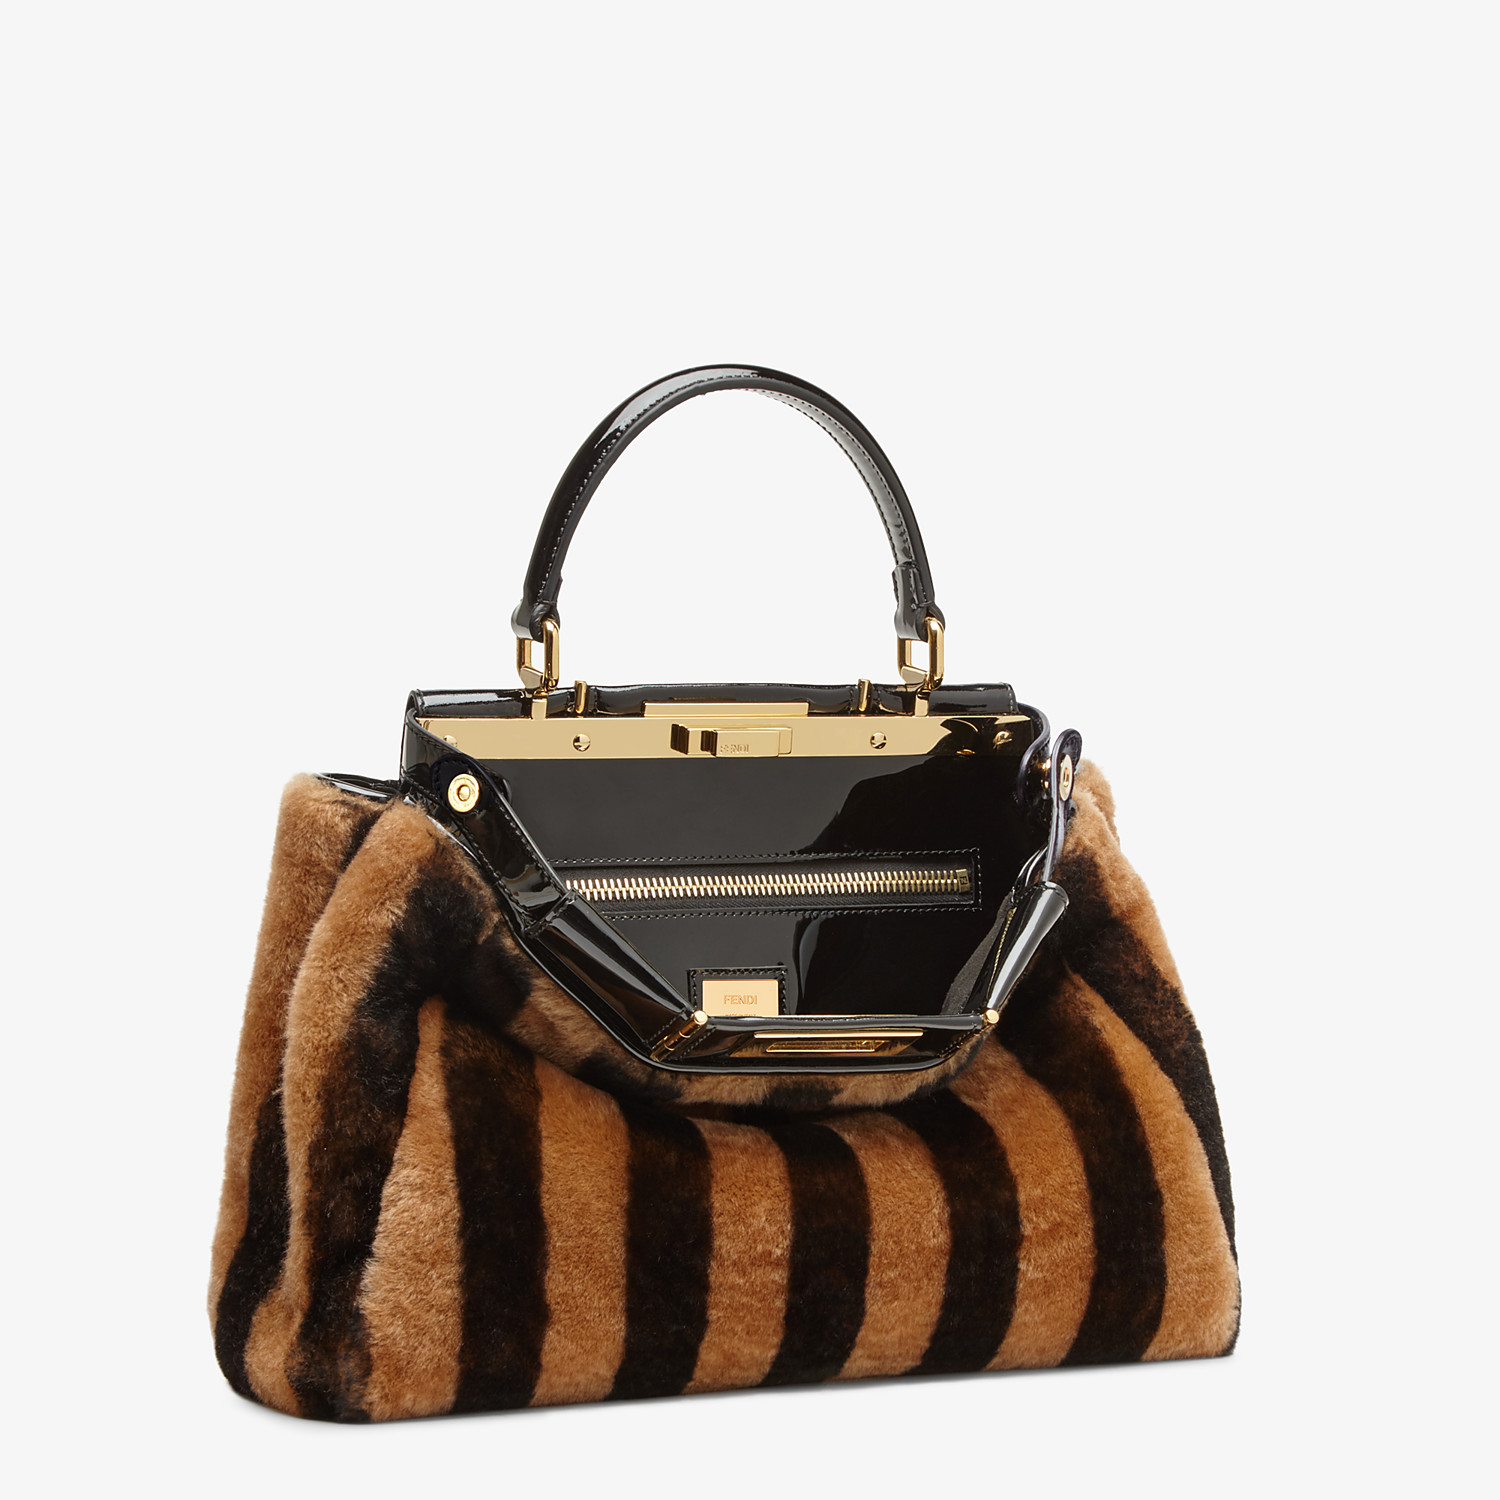 FENDI PEEKABOO ICONIC MEDIUM - Borsa in montone e vinile multicolor - vista 4 dettaglio